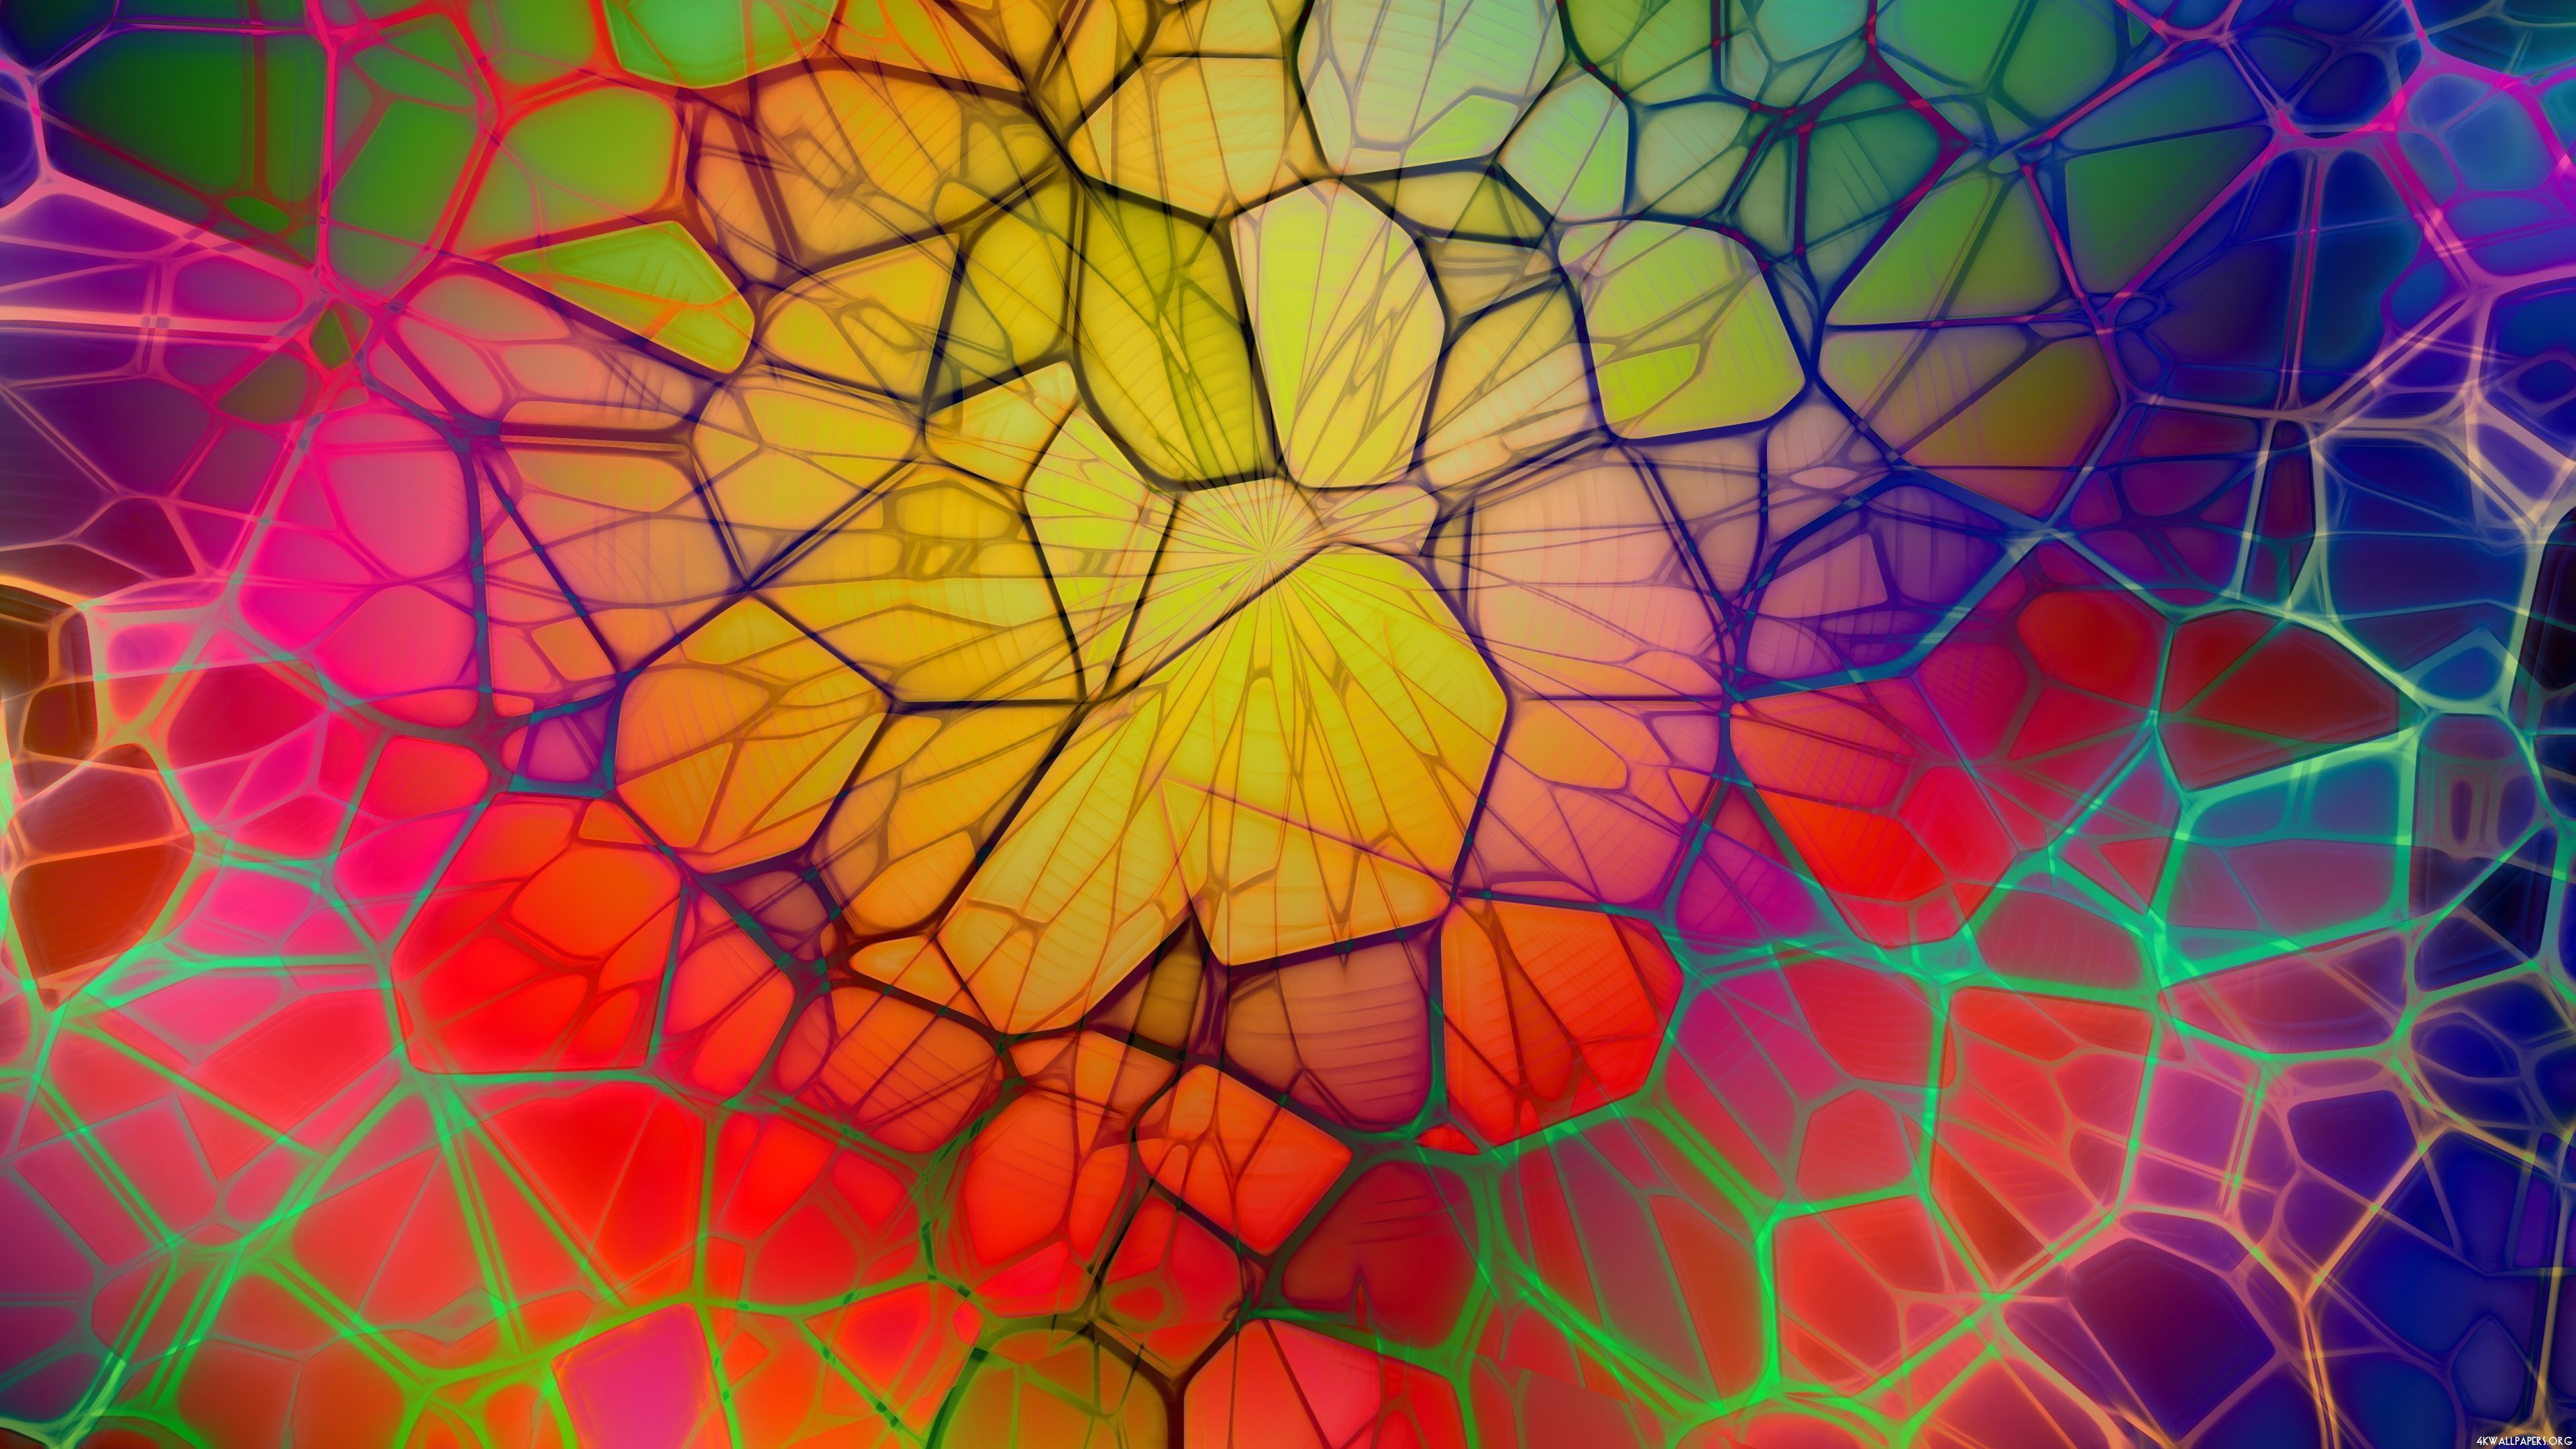 4K Abstract Wallpapers Group  81   Abstract Colorful Web 4K Ultra HD Wallpaper 3840x2160   ID  302